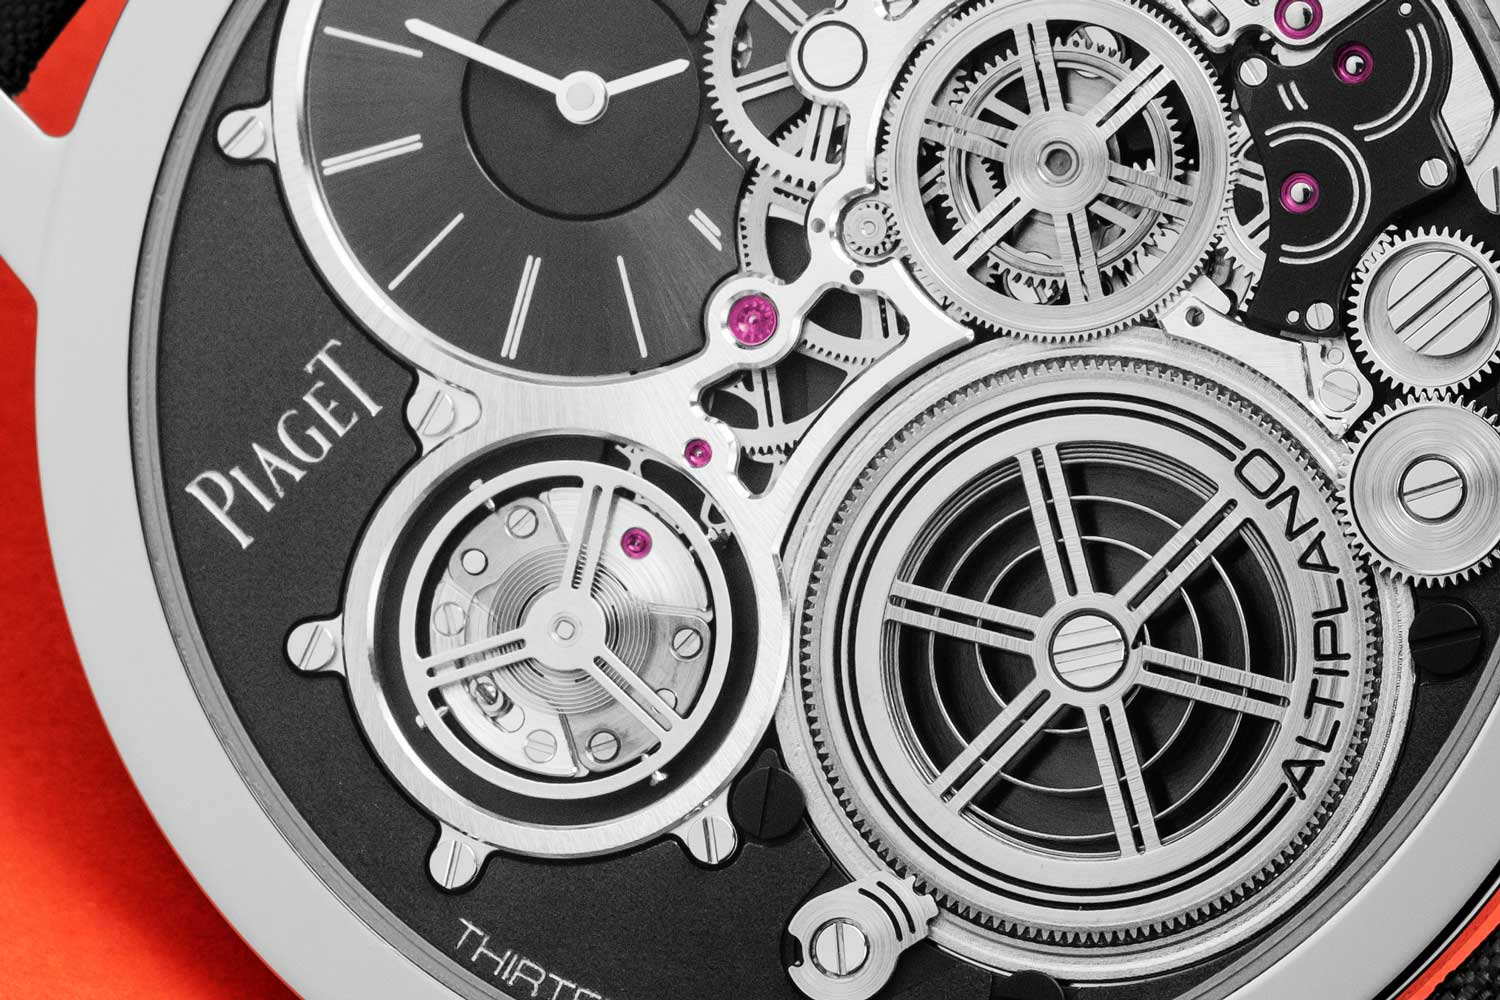 The Piaget Altiplano Ultimate Concept's balance wheel has no bridge over it to secure it from above, it is entirely supported from behind and instead of resting on a pinion between rubies it is supported, and oscillates, between ceramic ball bearings (©Revolution)